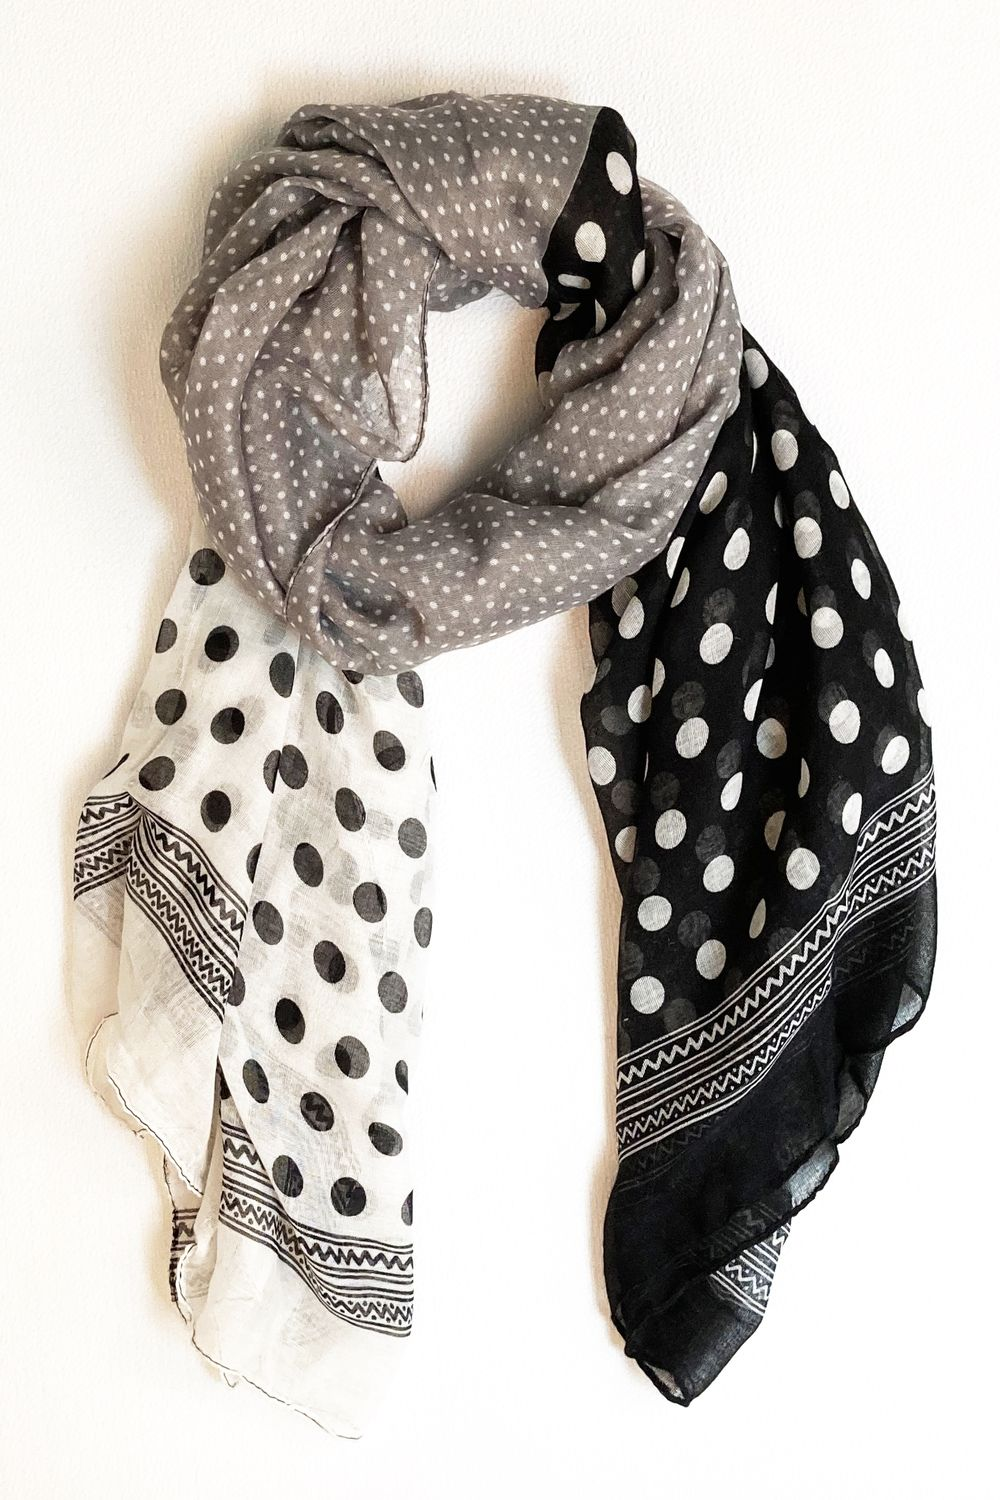 Grey Black & White Polka Dot Scarf